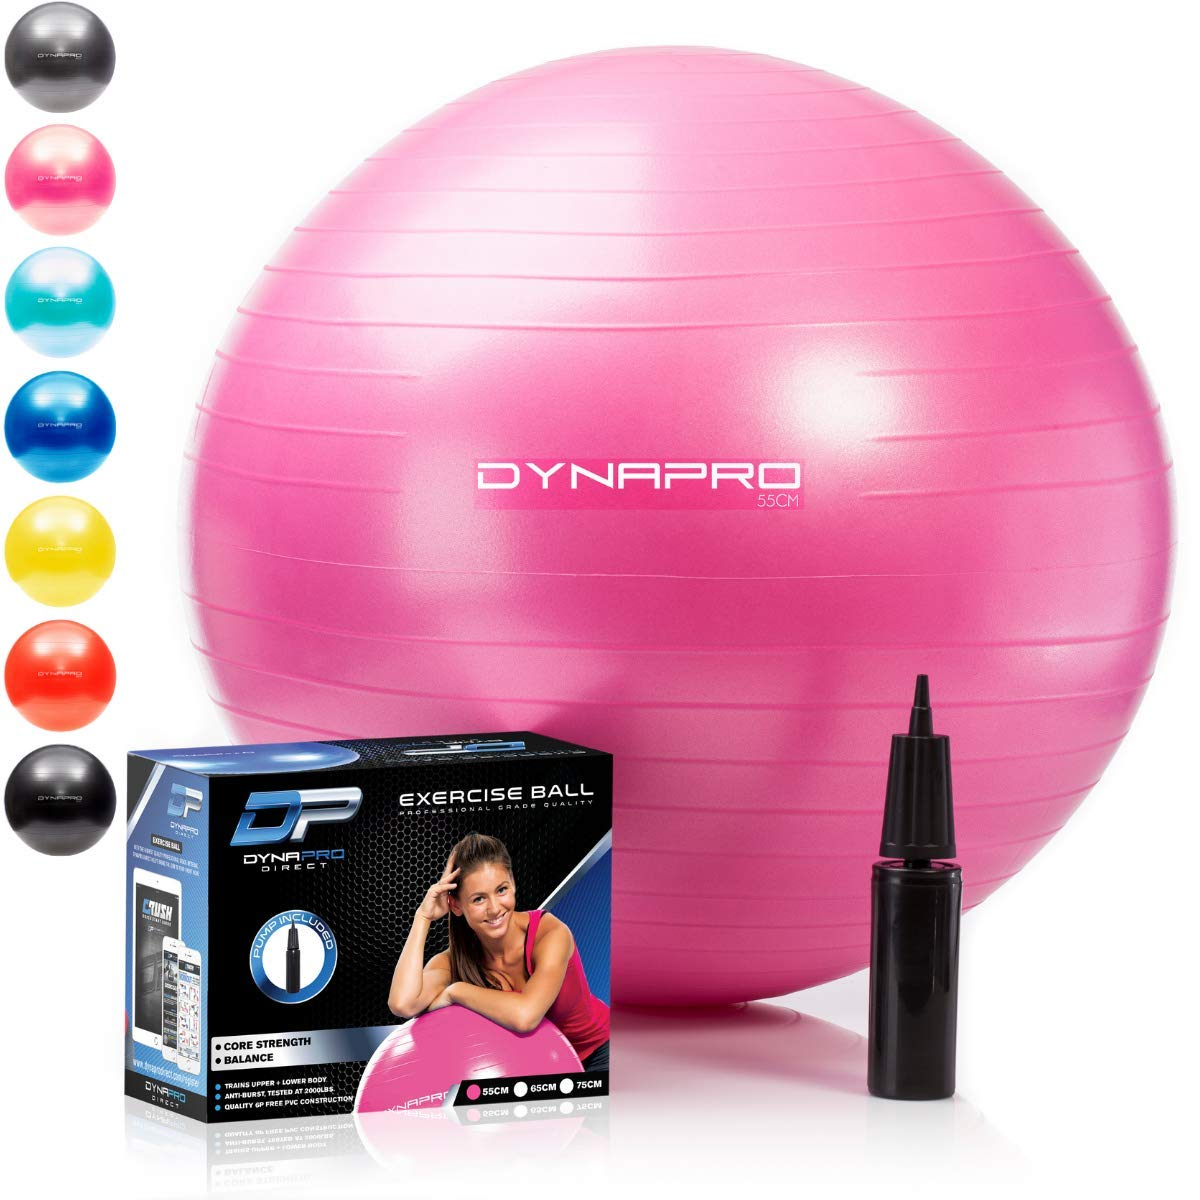 DYNAPRO Exercise Ball Professional Centimeters